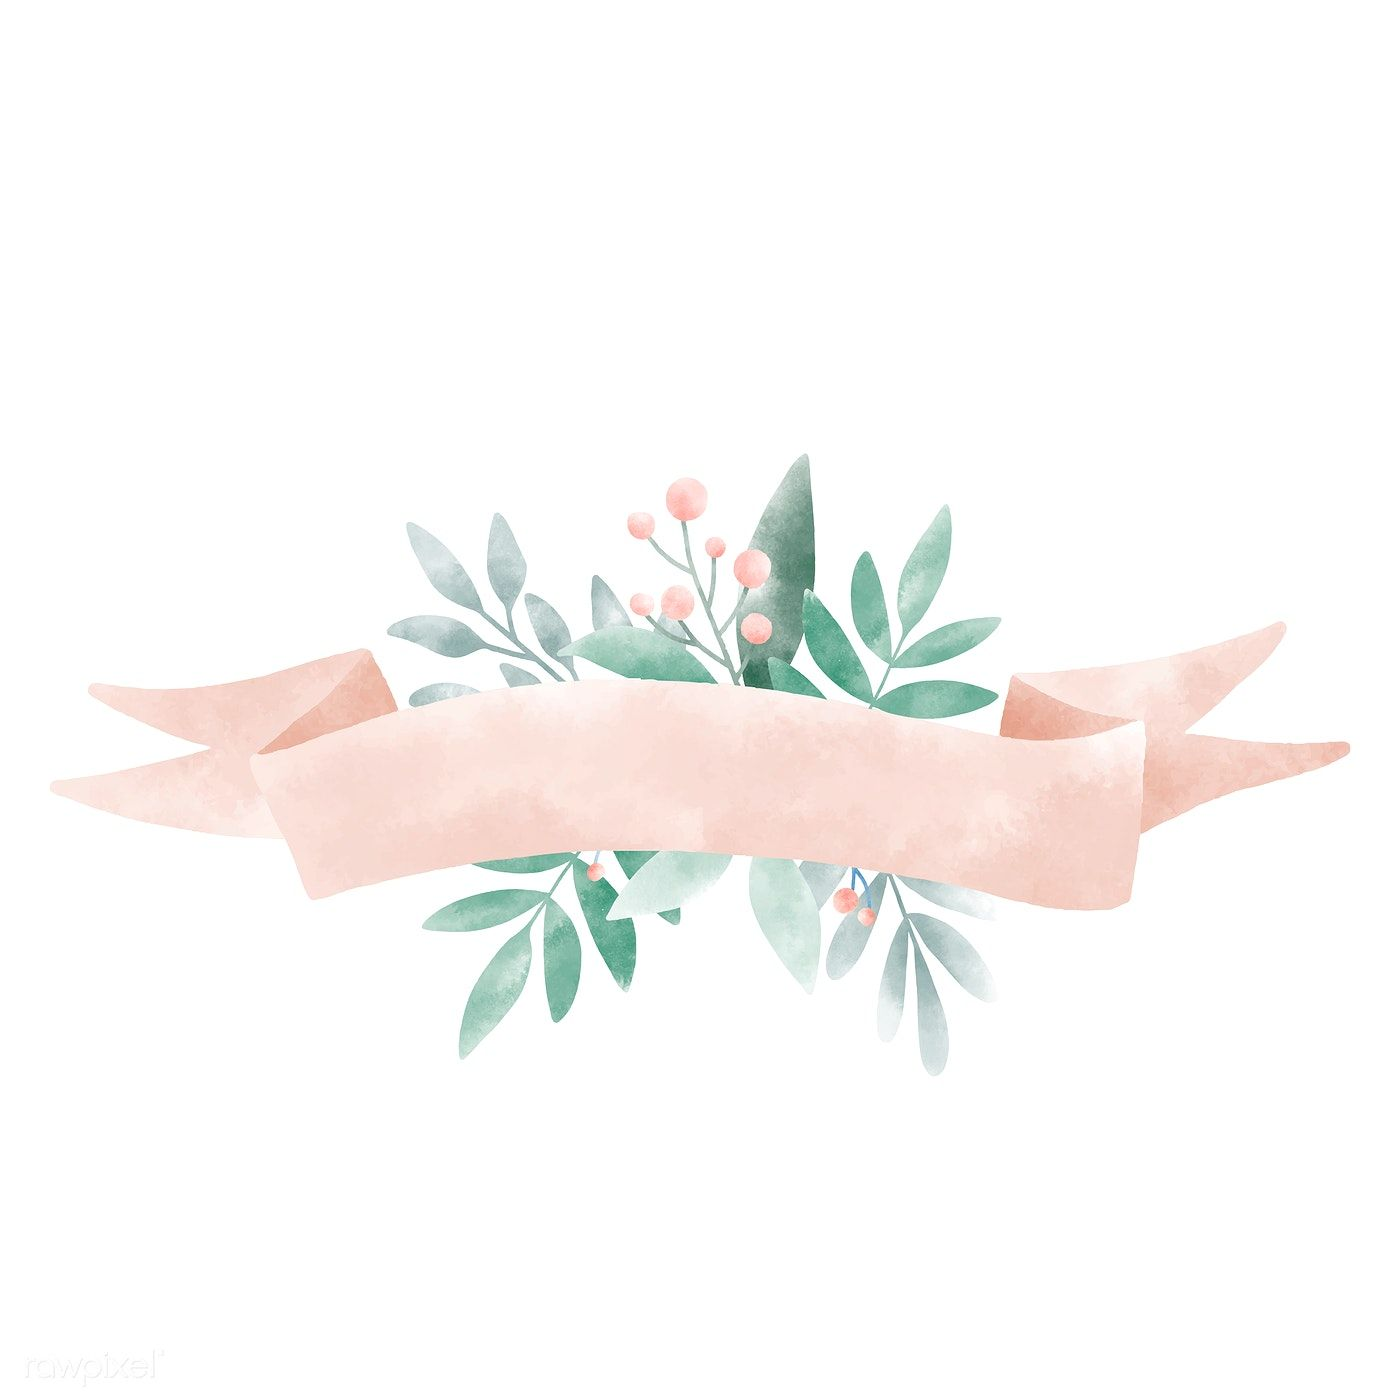 Download Premium Illustration Of Watercolor Leaves With A Banner